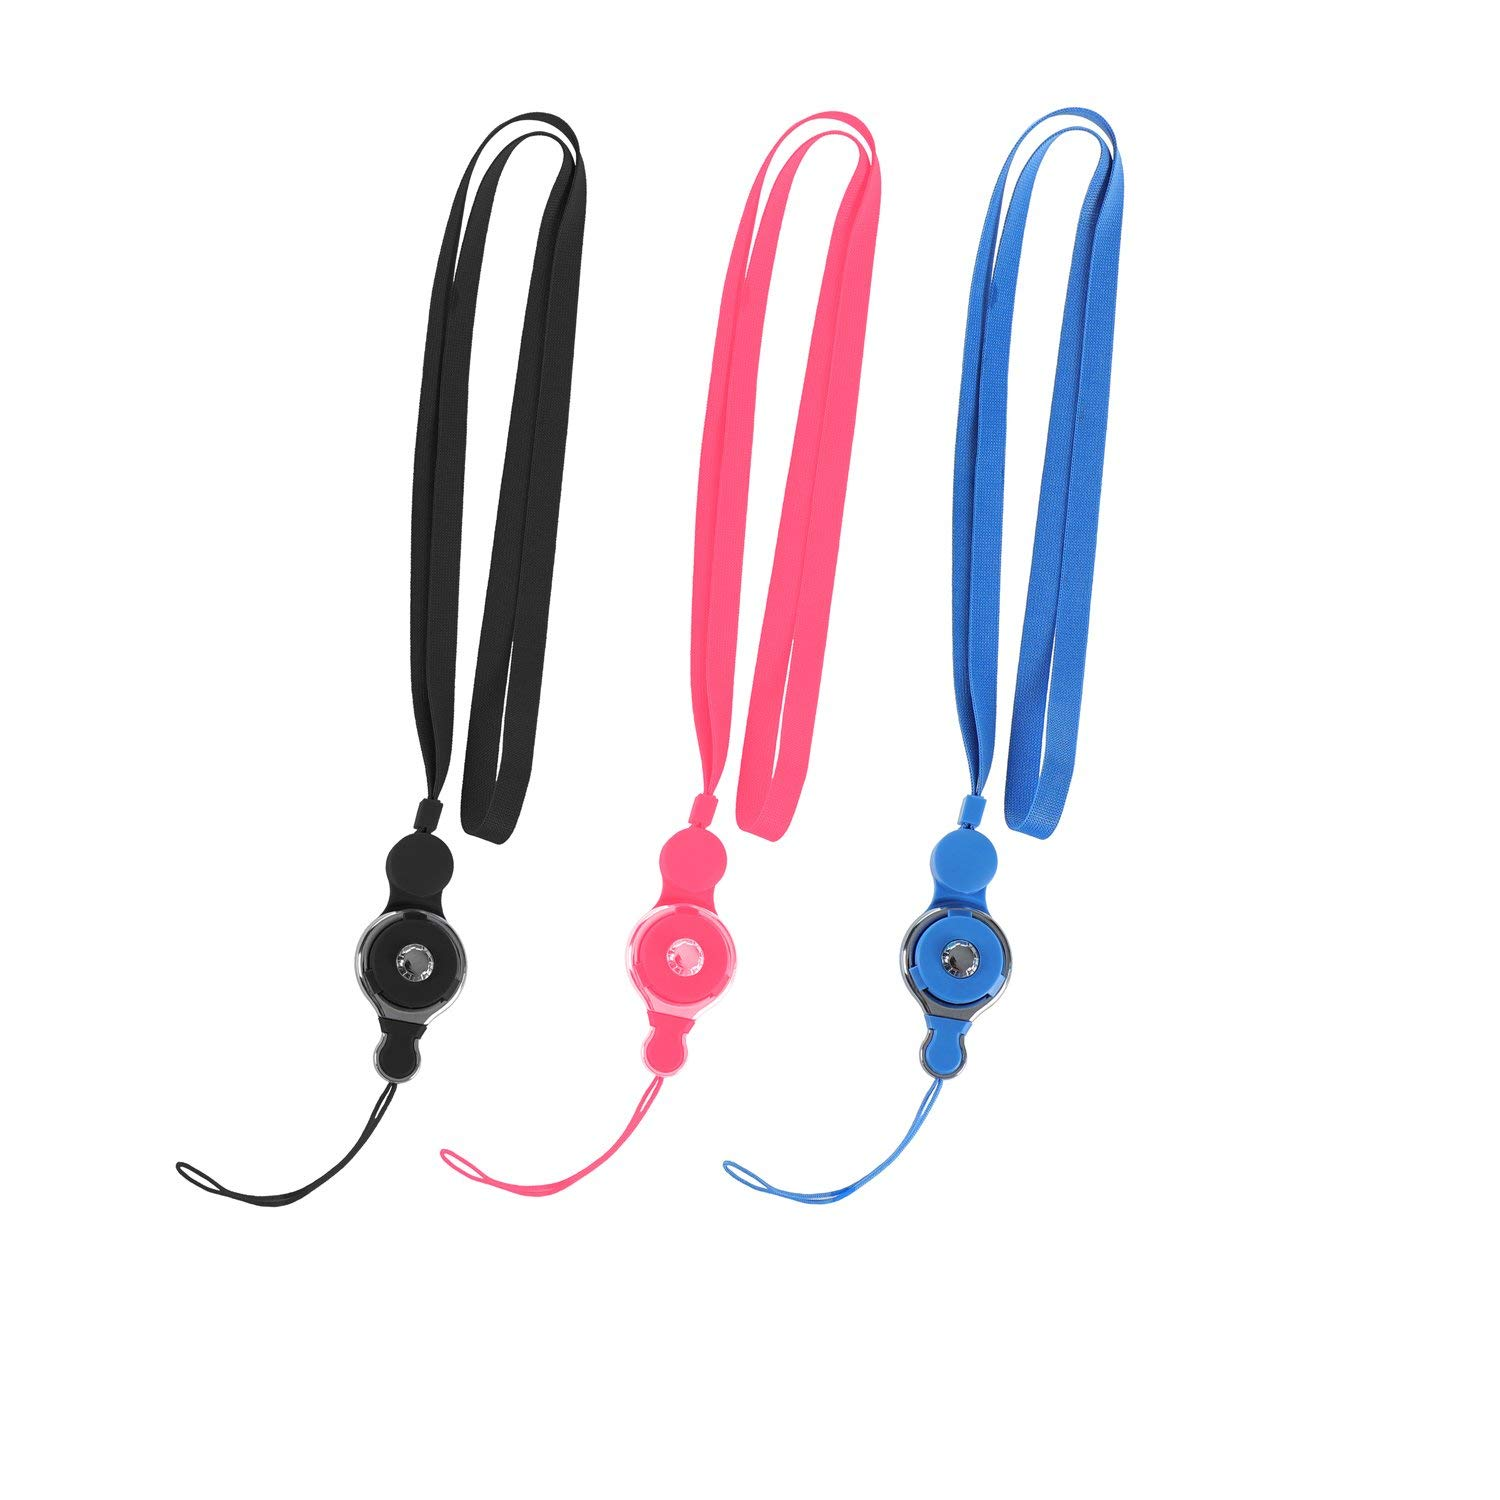 Mobile Phone Neck Lanyard, riepor 21'' Quick Release Nylon Necklace Belt/Key Ring Accessories - Random Colors(1PCS) by UG-KOINPYT